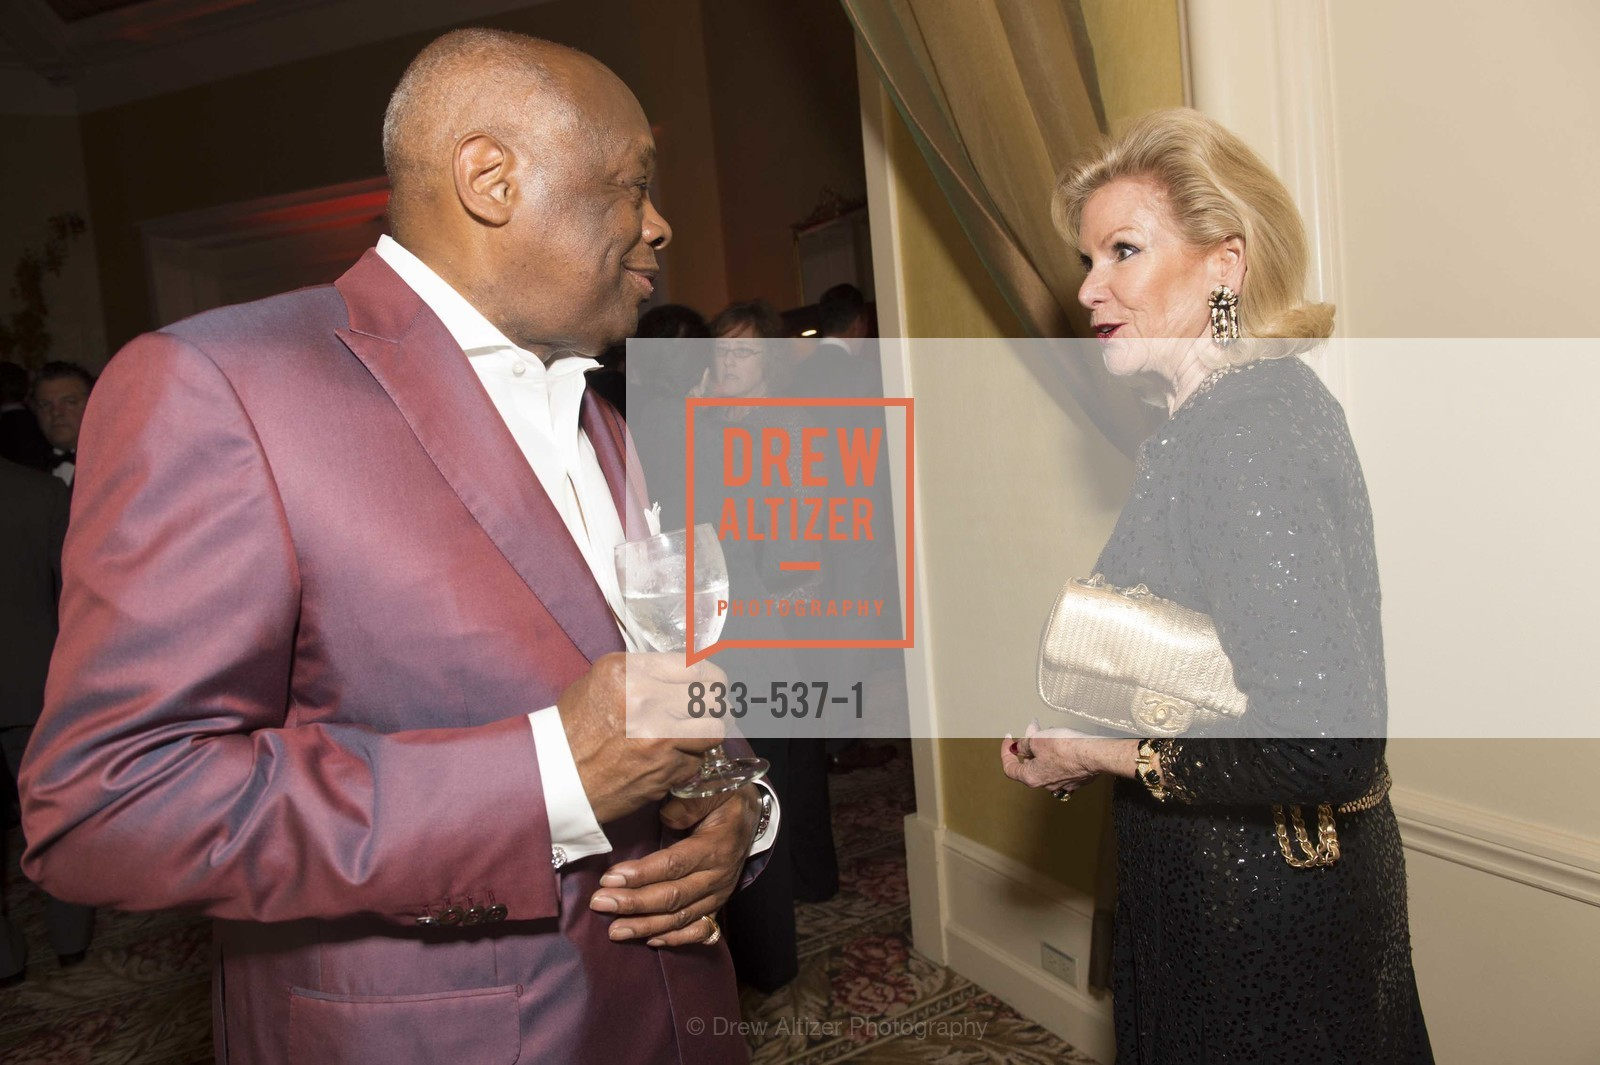 Willie Brown, TOP OF THE MARK'S 75TH Anniversary Party, US, November 6th, 2014,Drew Altizer, Drew Altizer Photography, full-service agency, private events, San Francisco photographer, photographer california